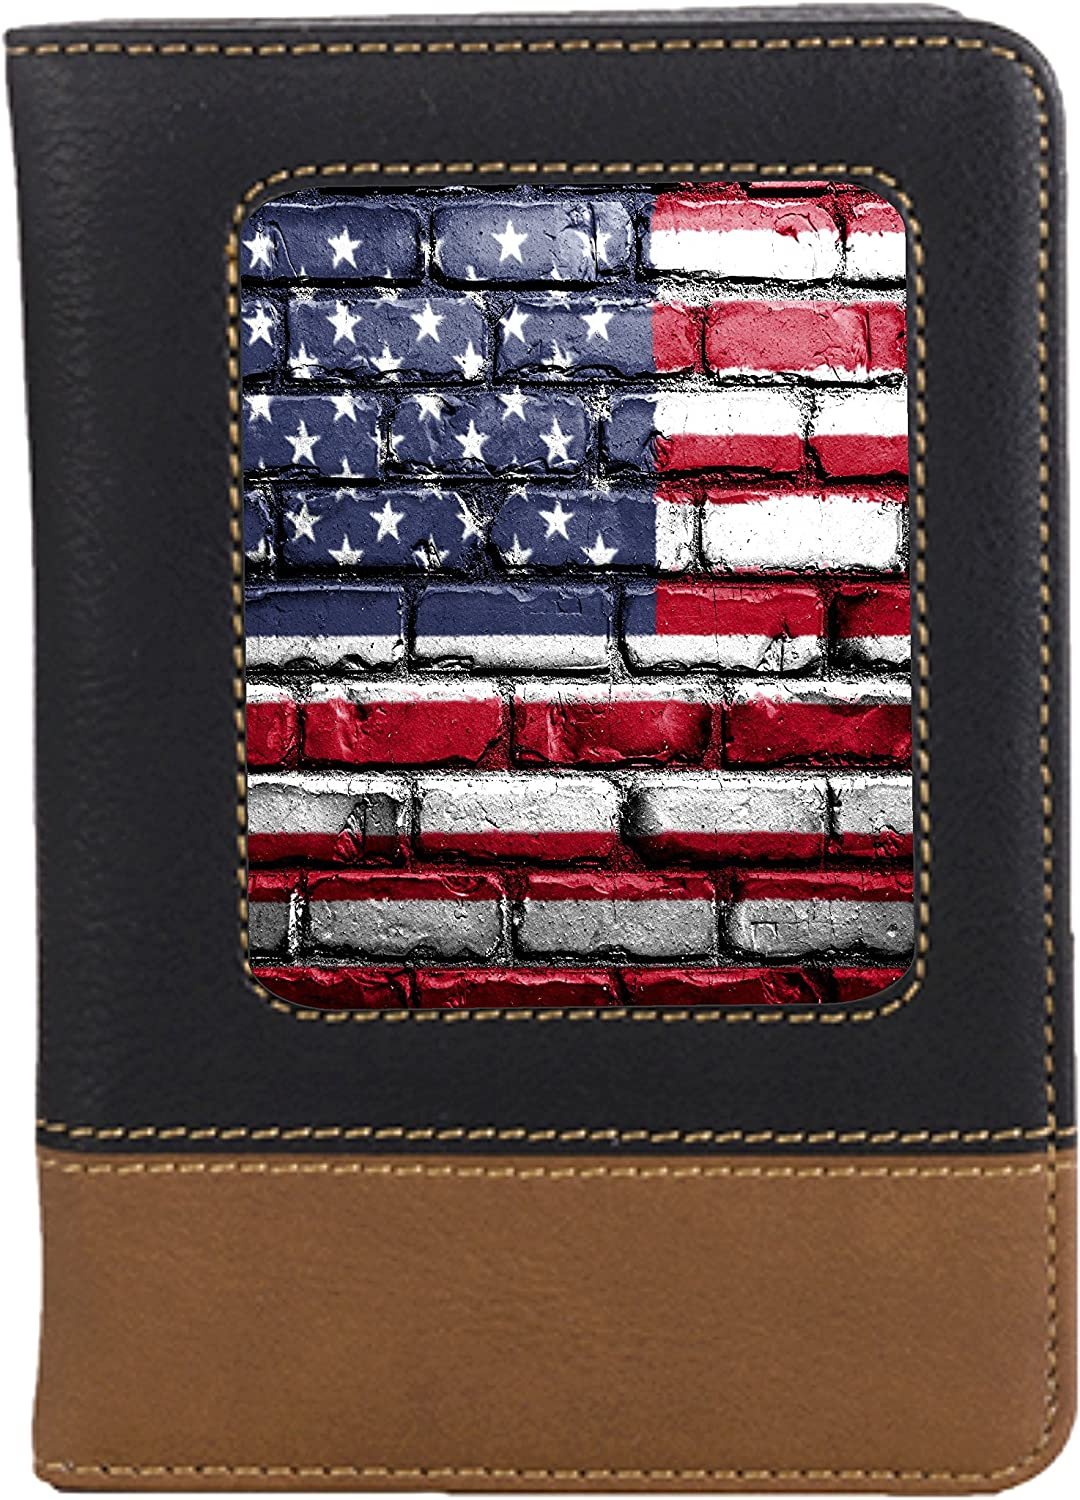 American Flag Brick Wall Leatherette Passport Wallet Style Case Cover For Travel